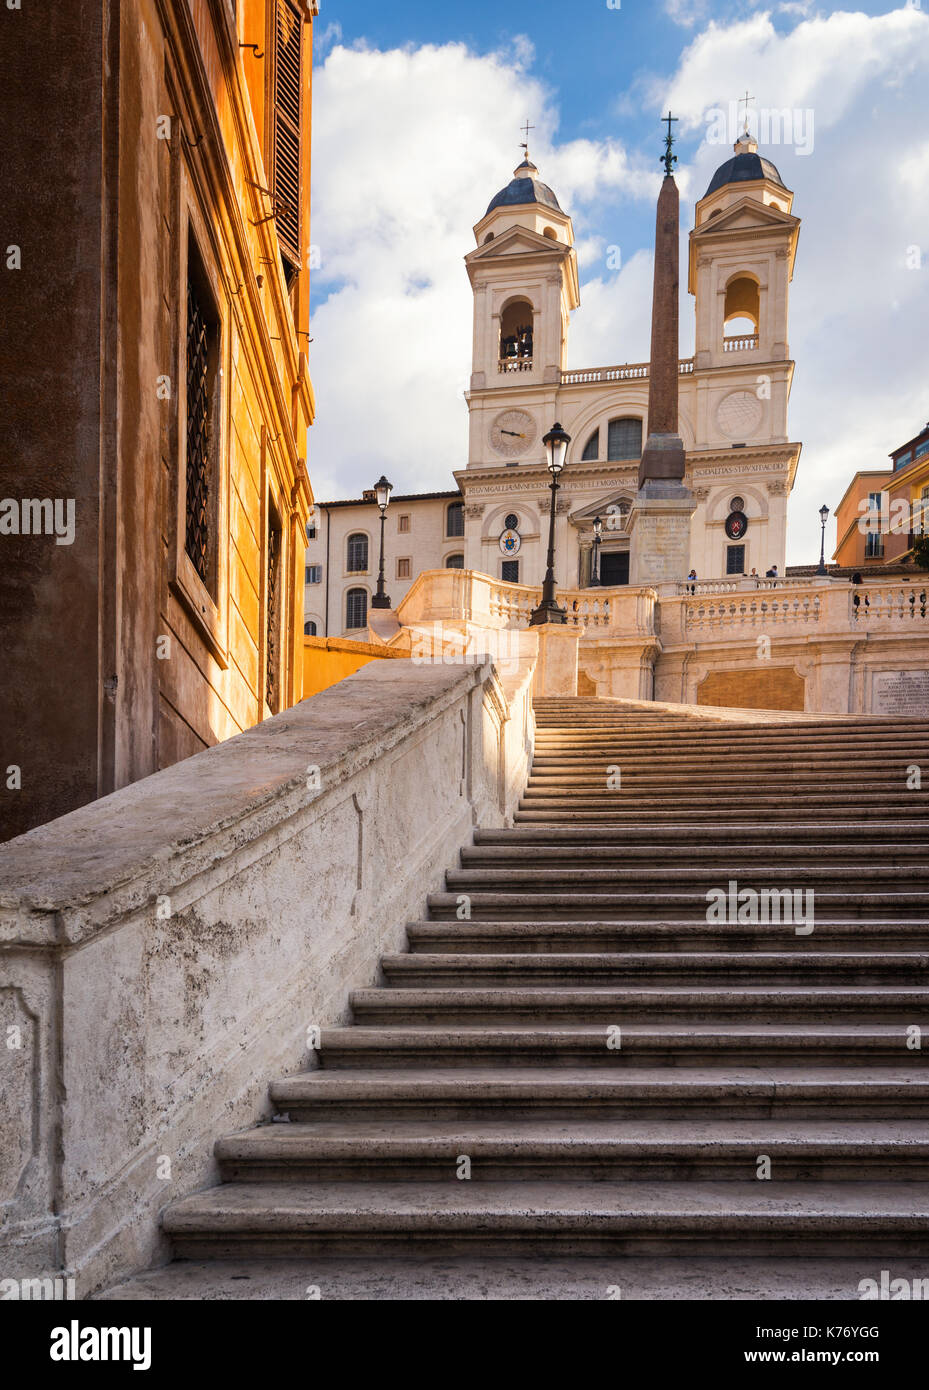 The right side of the famous Spanish Stairs in Rome, capital of Italy and the eternal city - Stock Image